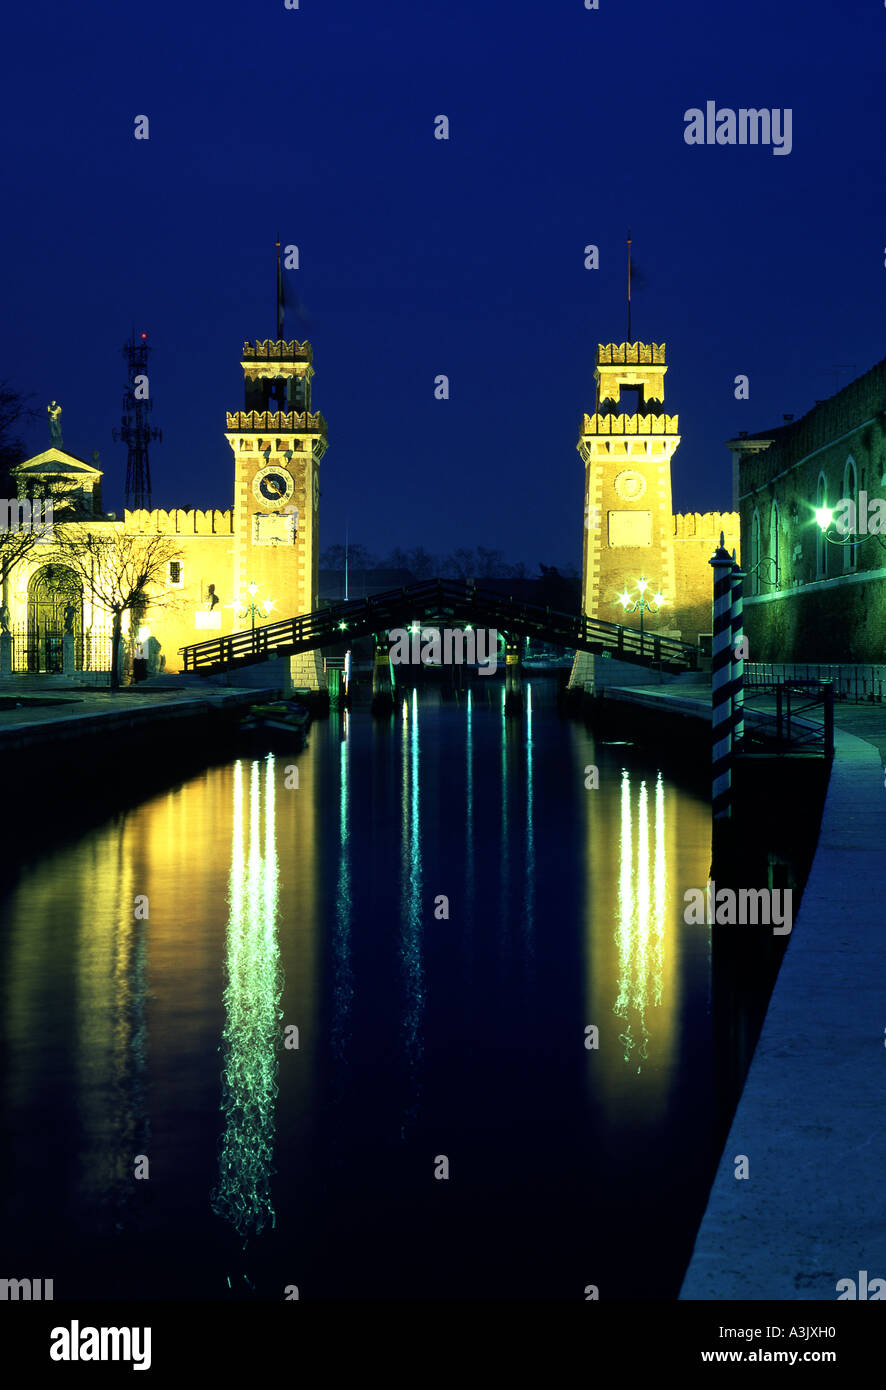 Arsenale gateway at night Castello Venice Veneto Italy - Stock Image